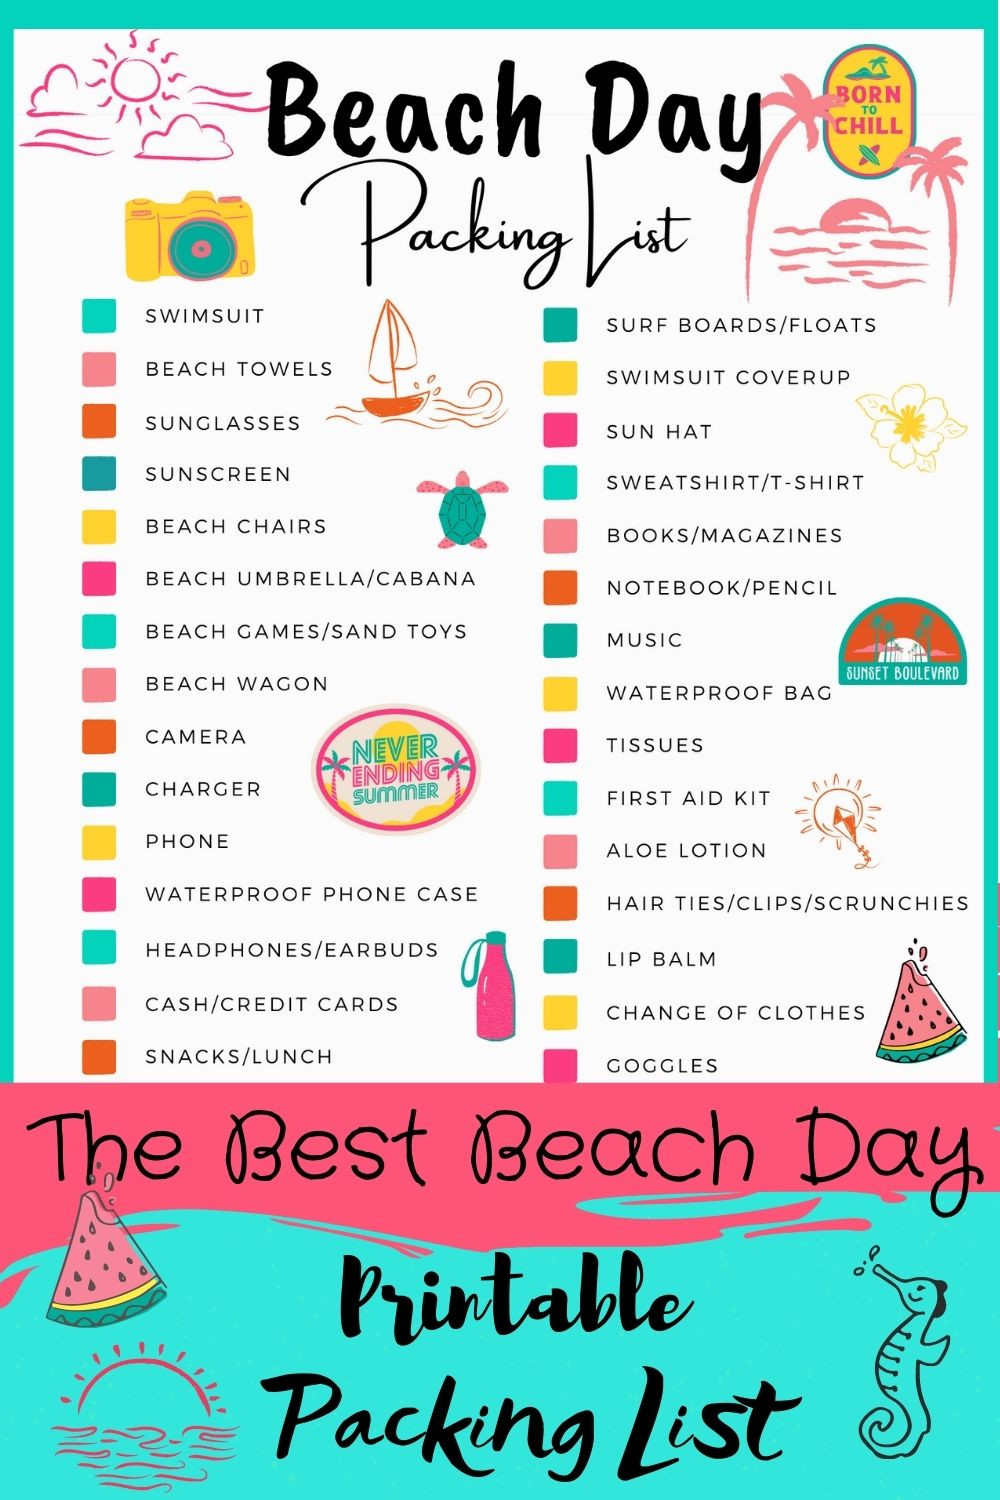 Beach Day Packing List Fun Best kids help get read list for getting ready to have fun colorful printable